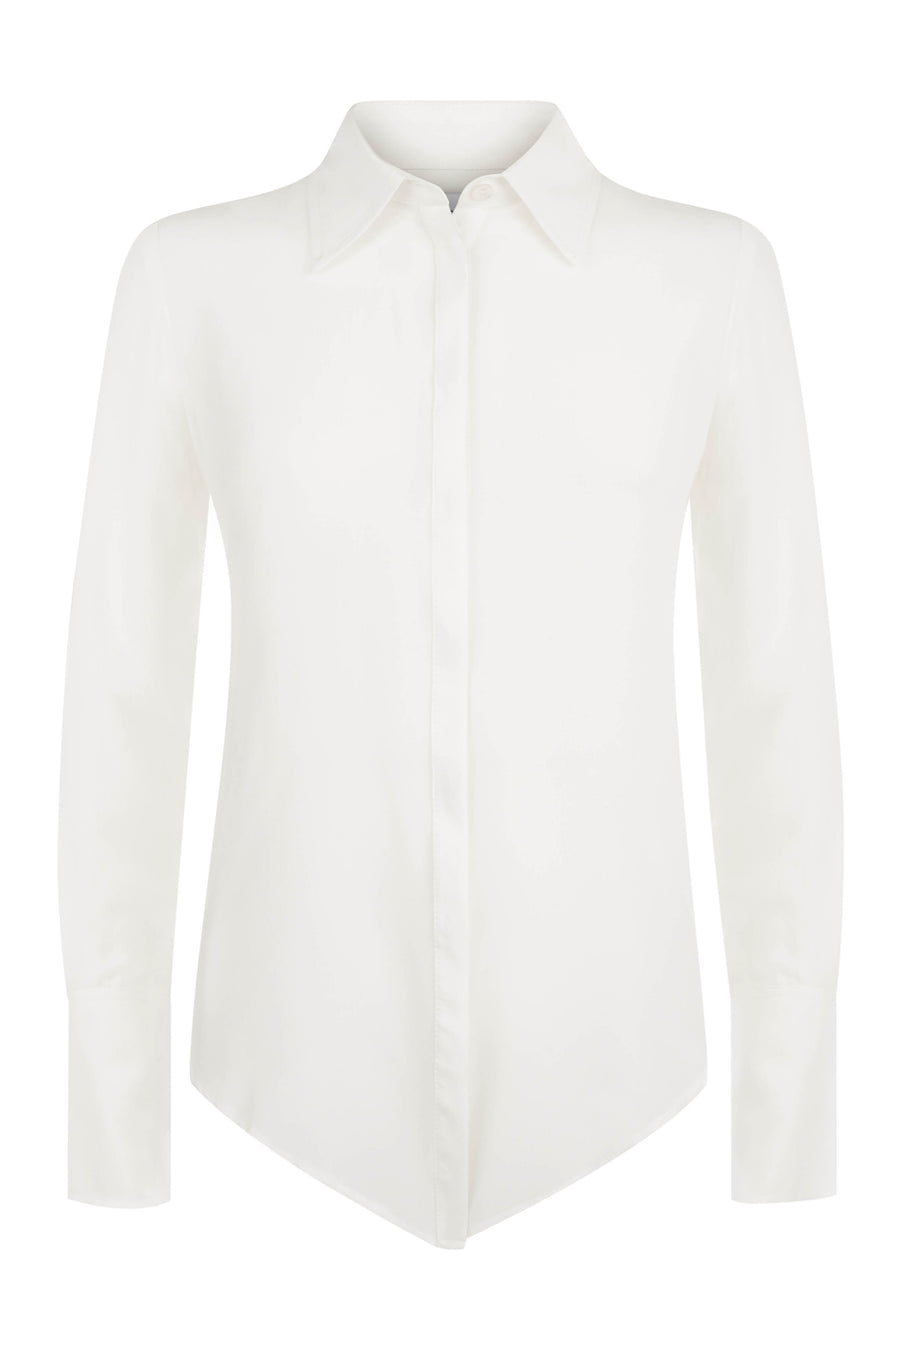 Beaulieu Silk Shirt Ivory